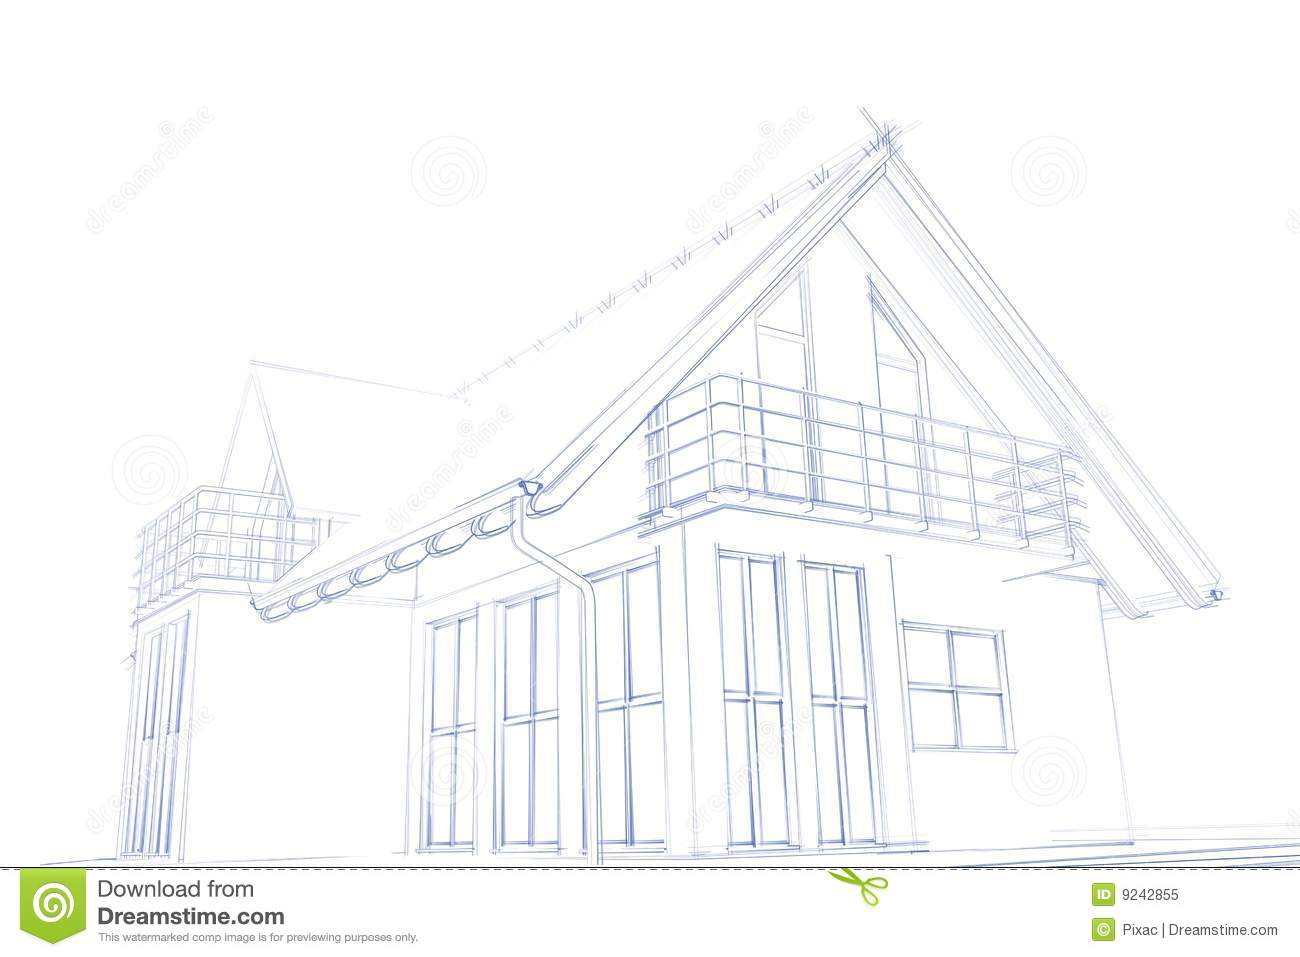 Modern 3 Bedroom House Plans India furthermore C8501fc57defa2f5 Sustainable House Design Floor Plan Sustainable Home Design Plans also 21 Easy To Build House Plans furthermore Saltbox further Free S le 3 Bedroom House Plans. on modern house plans